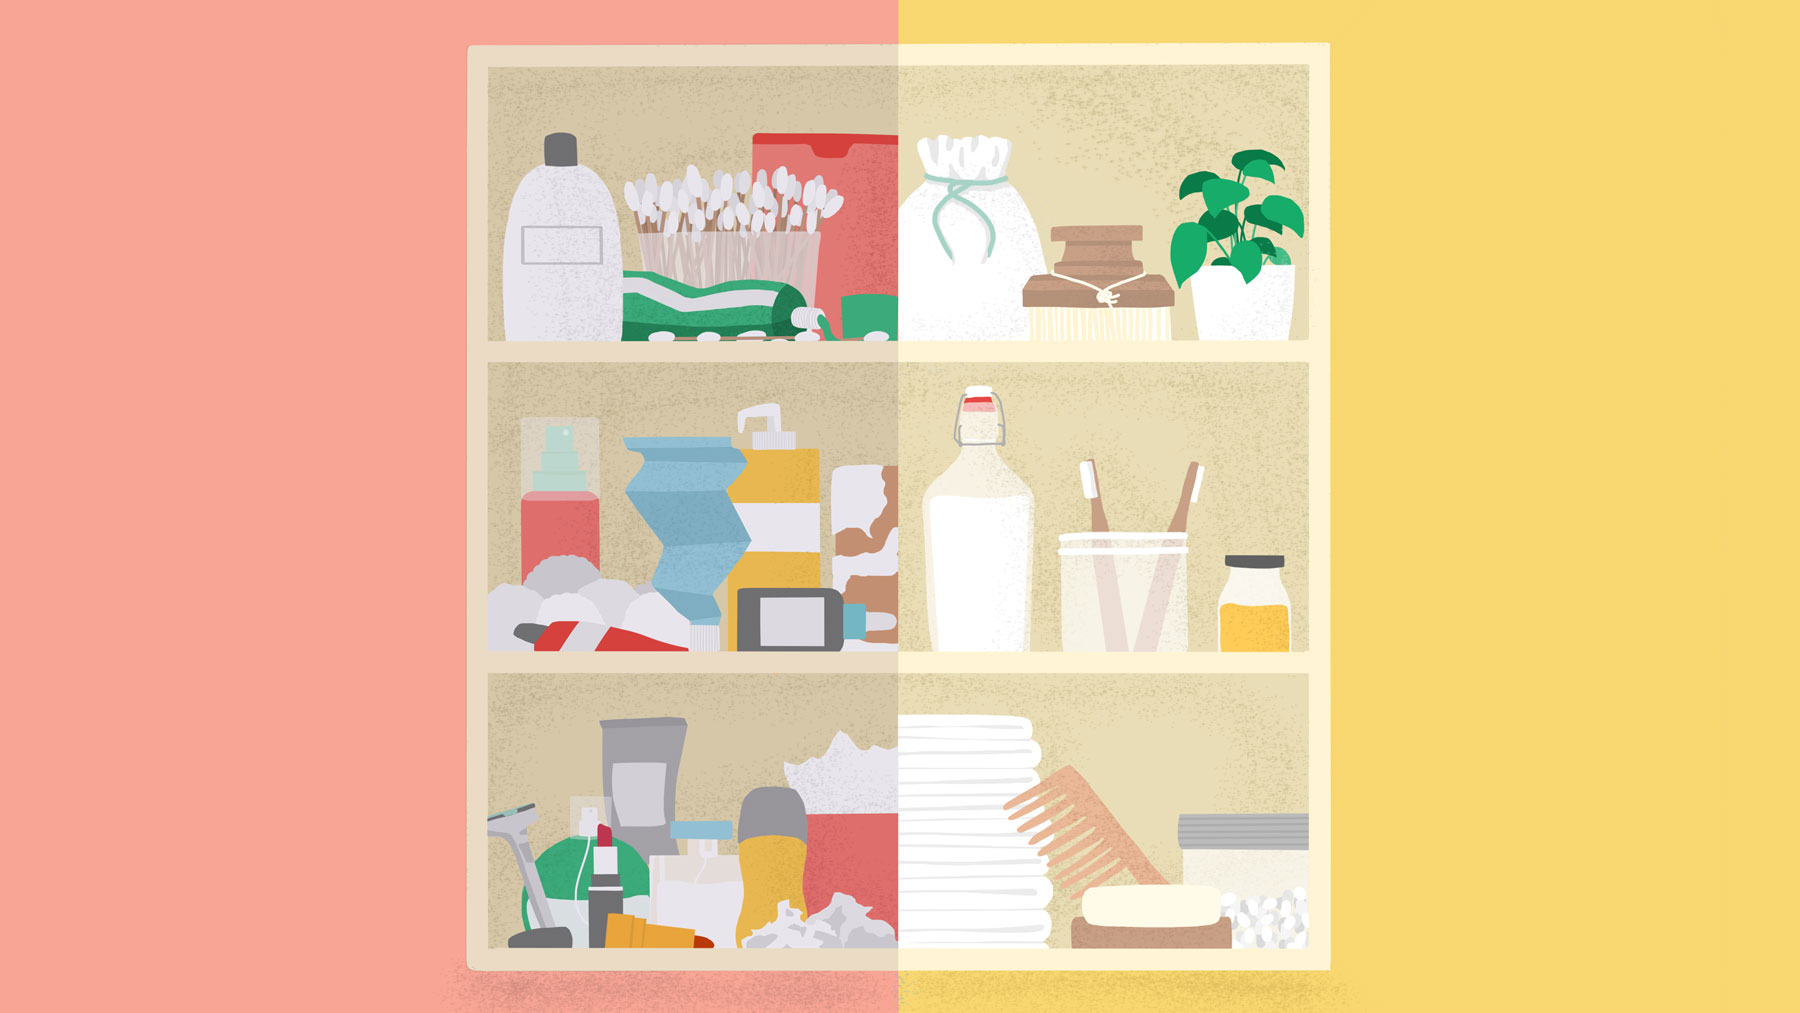 Zero Waste Home - Five Rules for Zero Waste from Bea Johnson